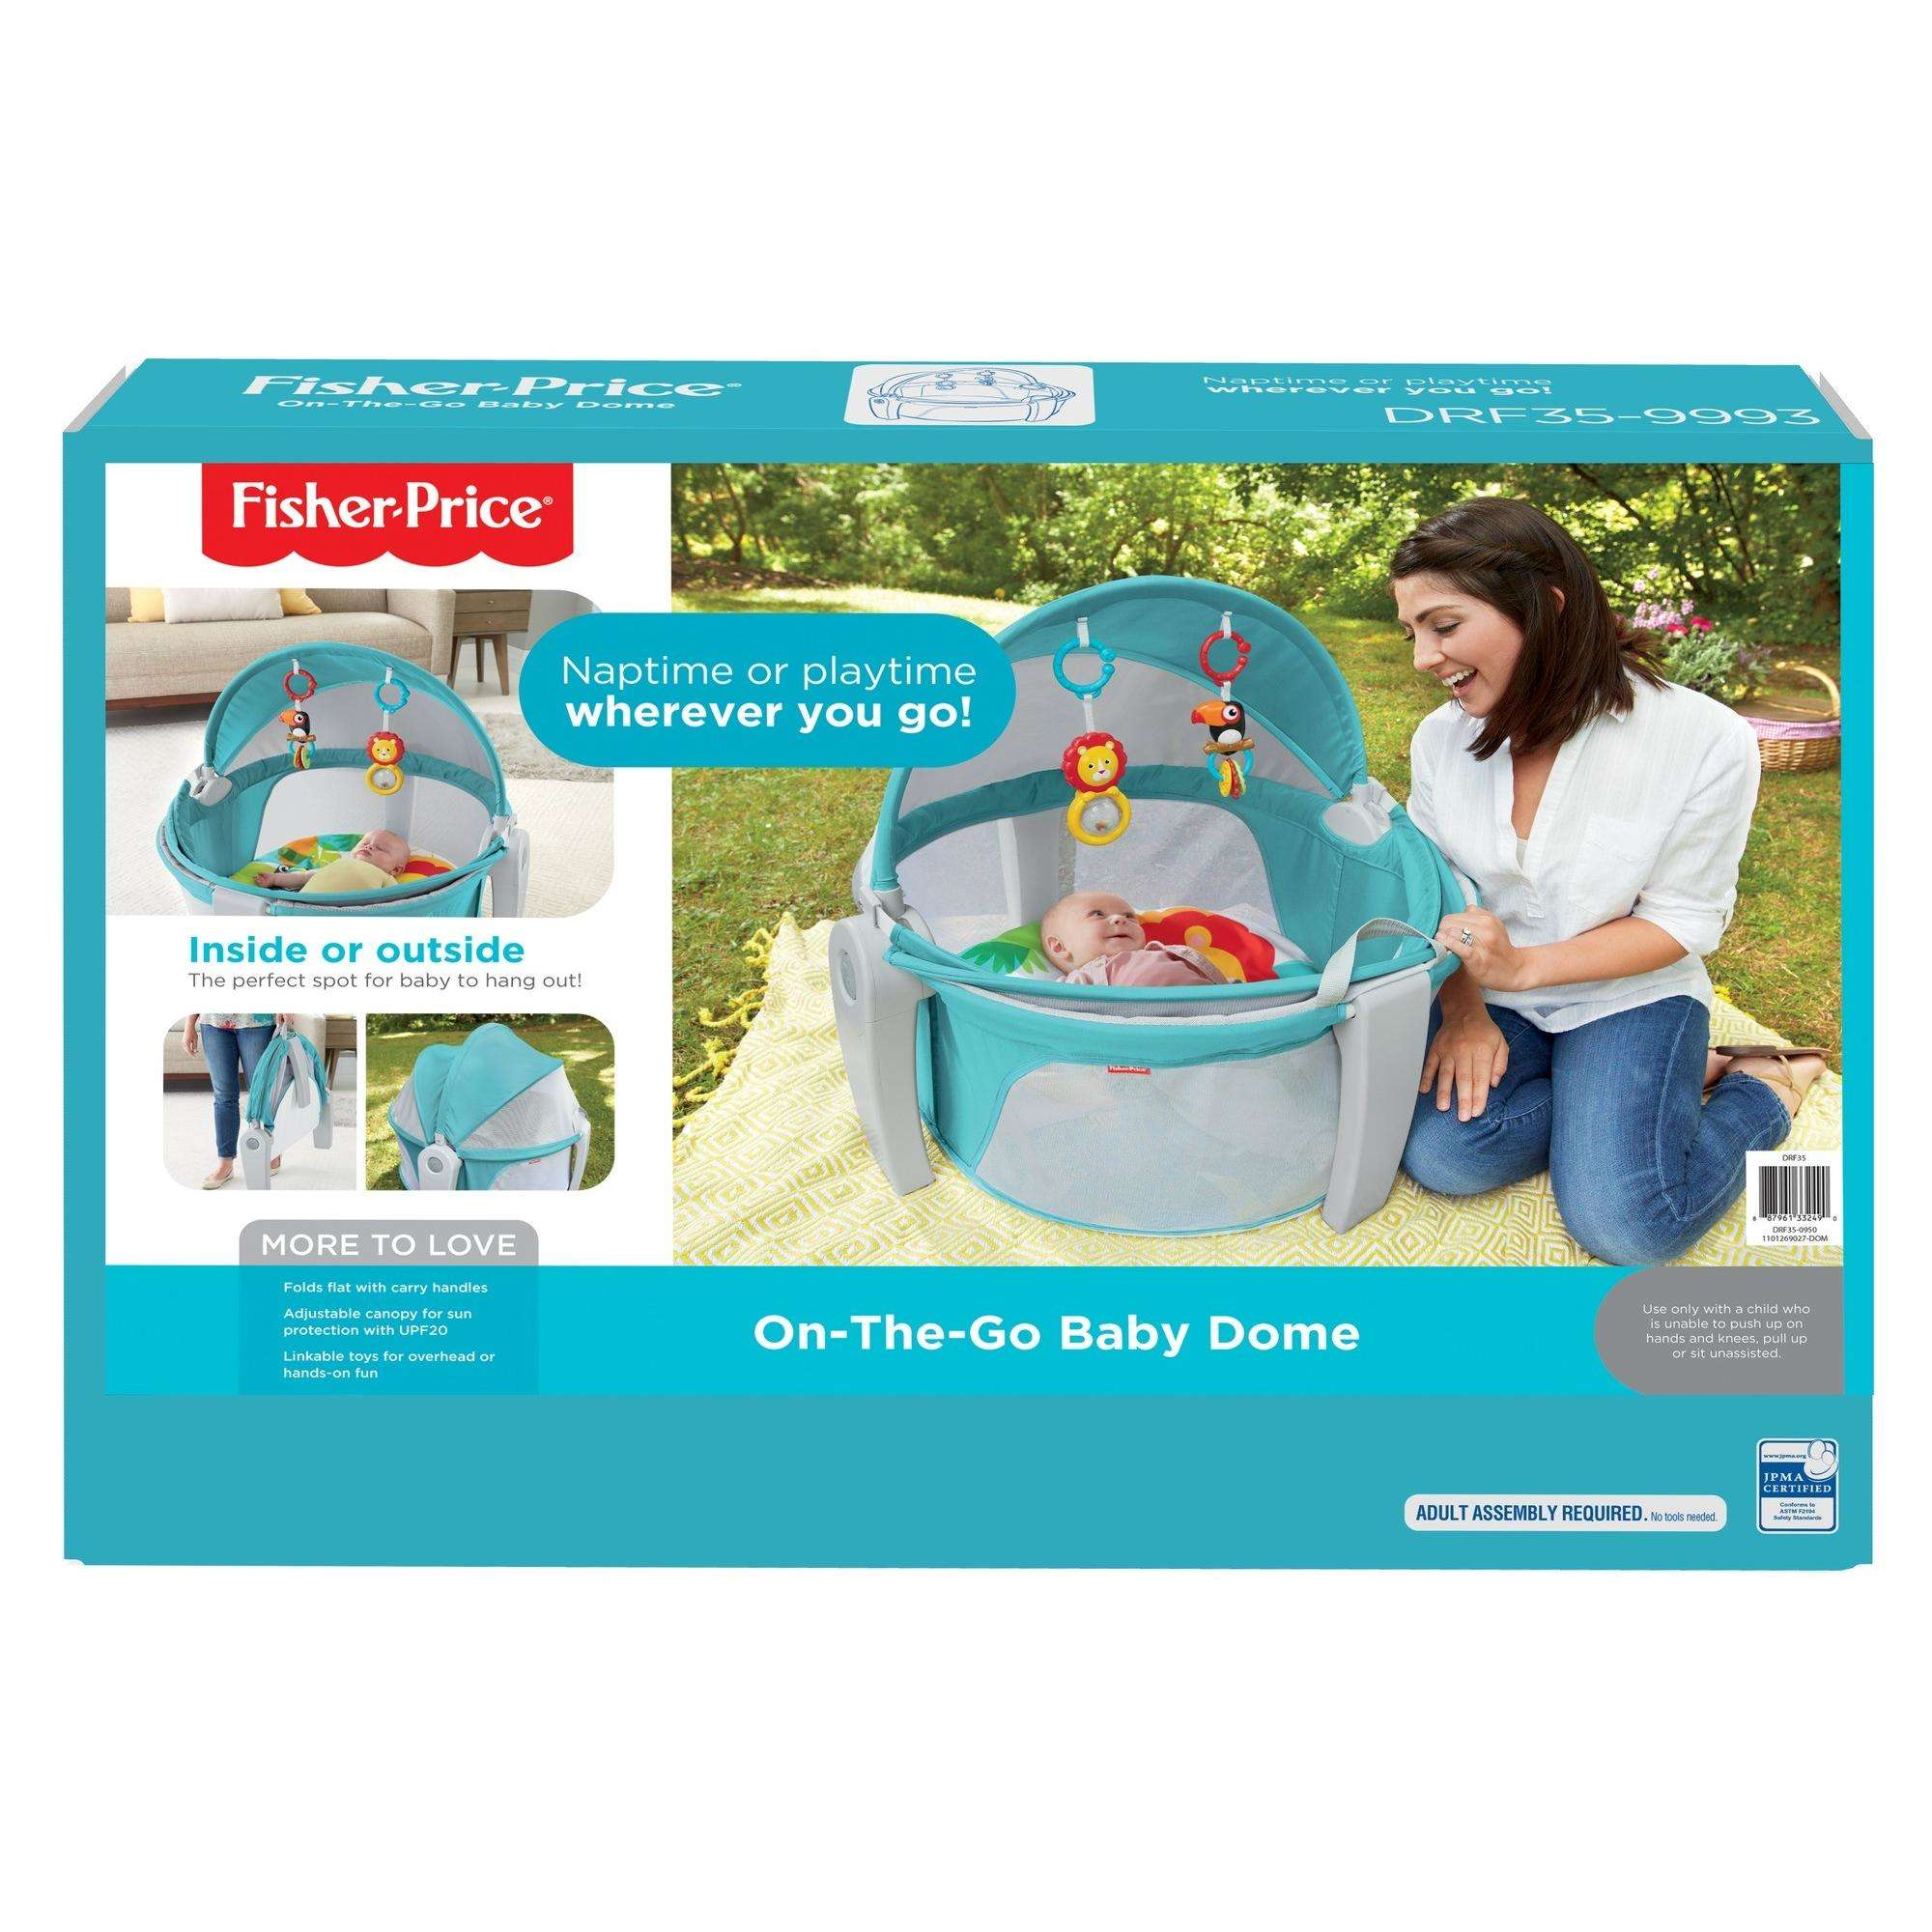 Fisher-Price On-The-Go Baby Dome - Walmart.com